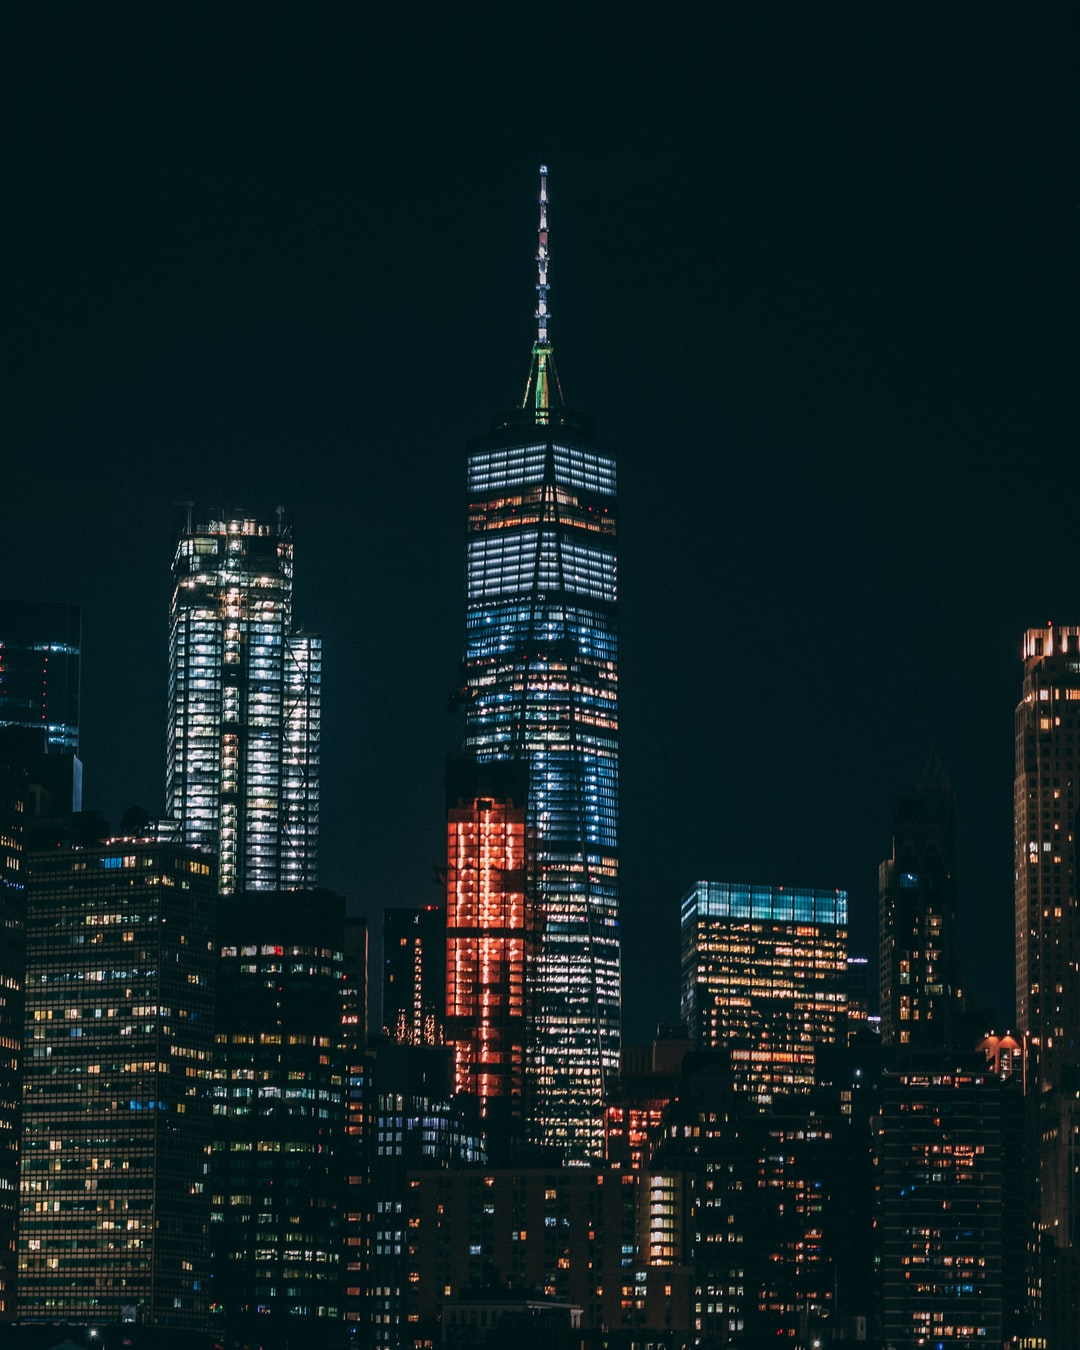 Gotham City Pictures Download Free Images On Unsplash